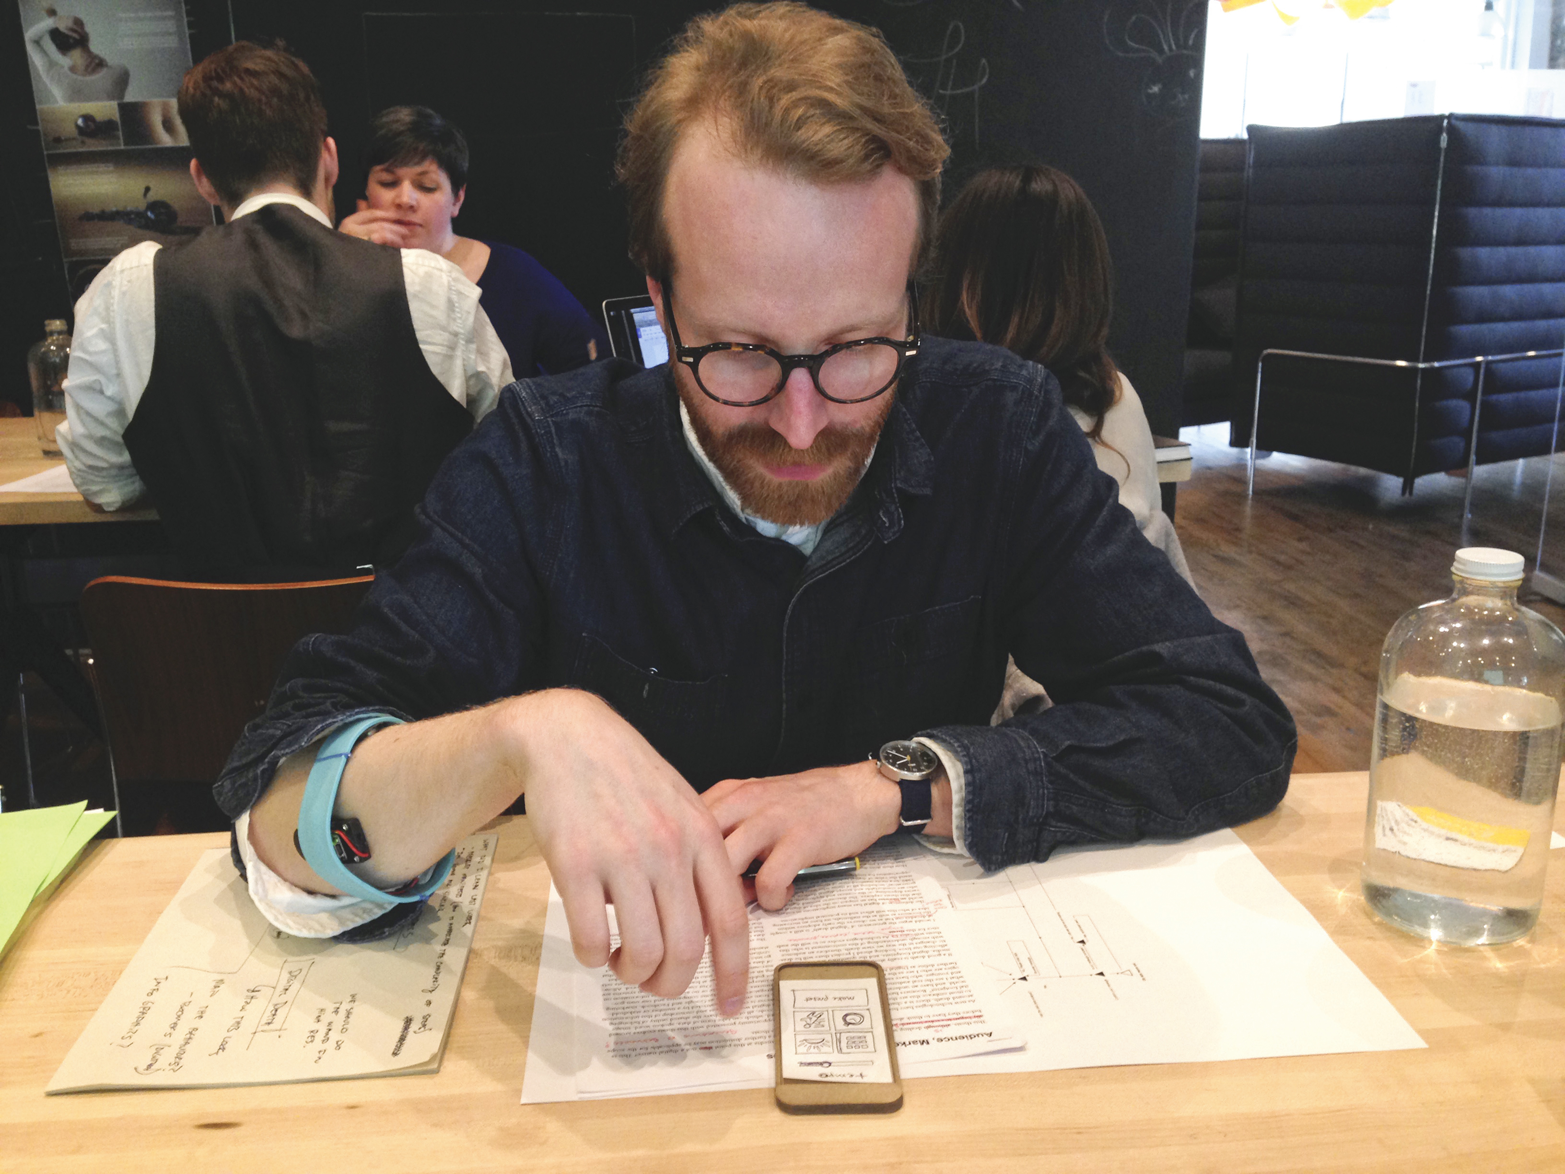 The third prototype tested longer-term wearability and user interaction with a low-fidelity app sketch